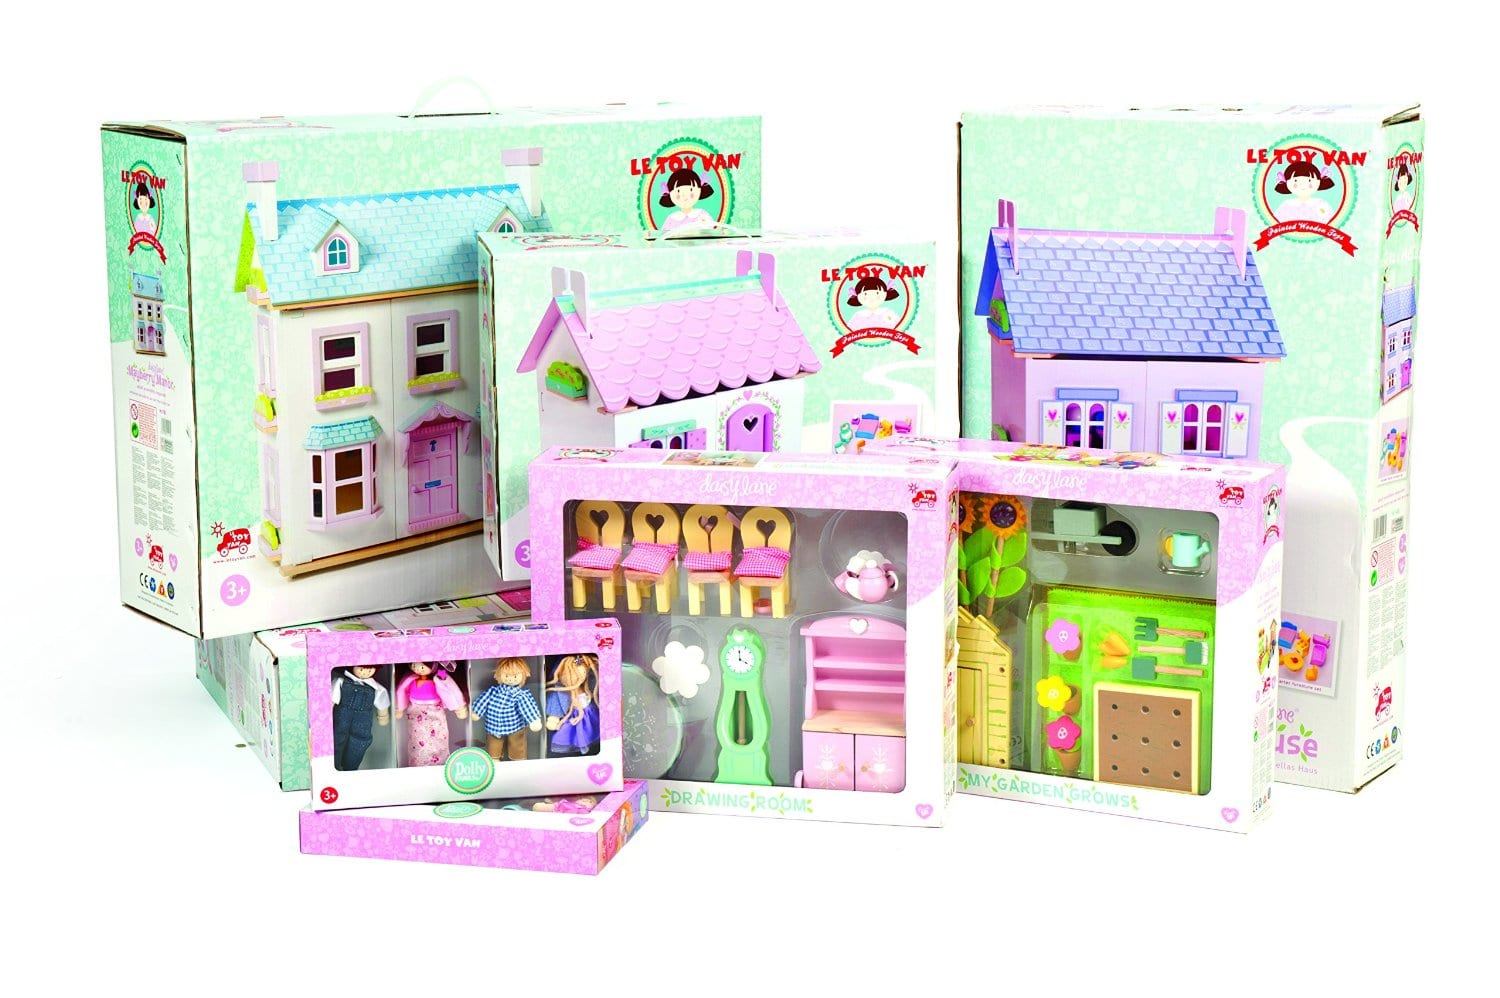 ... Dolls House Furniture By Le Toy Van (Toy). ; 